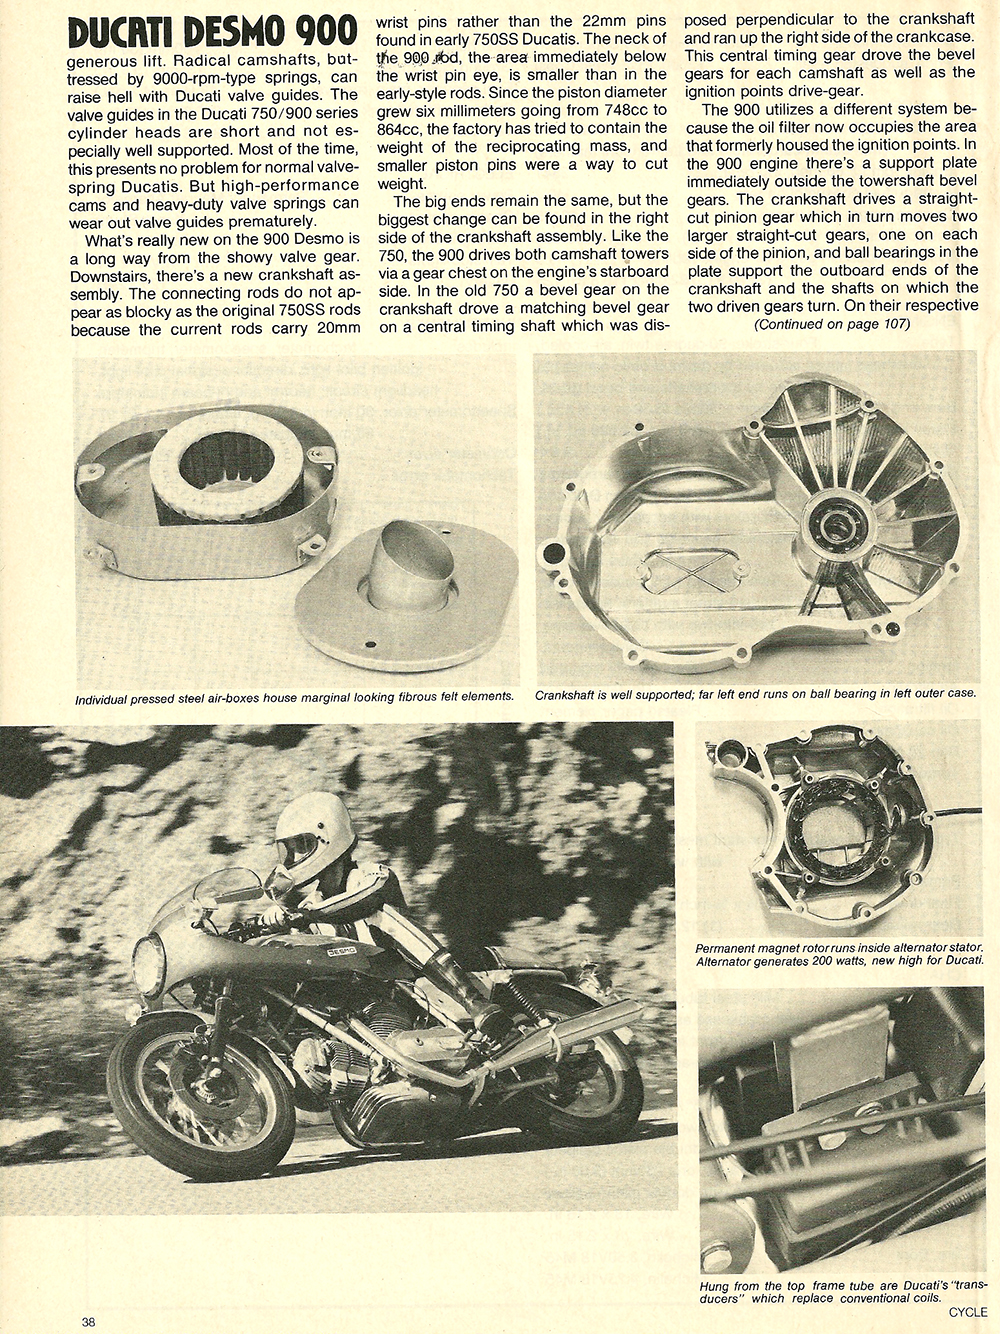 1978 Ducati Desmo 900 Super Sport road test 07.jpg